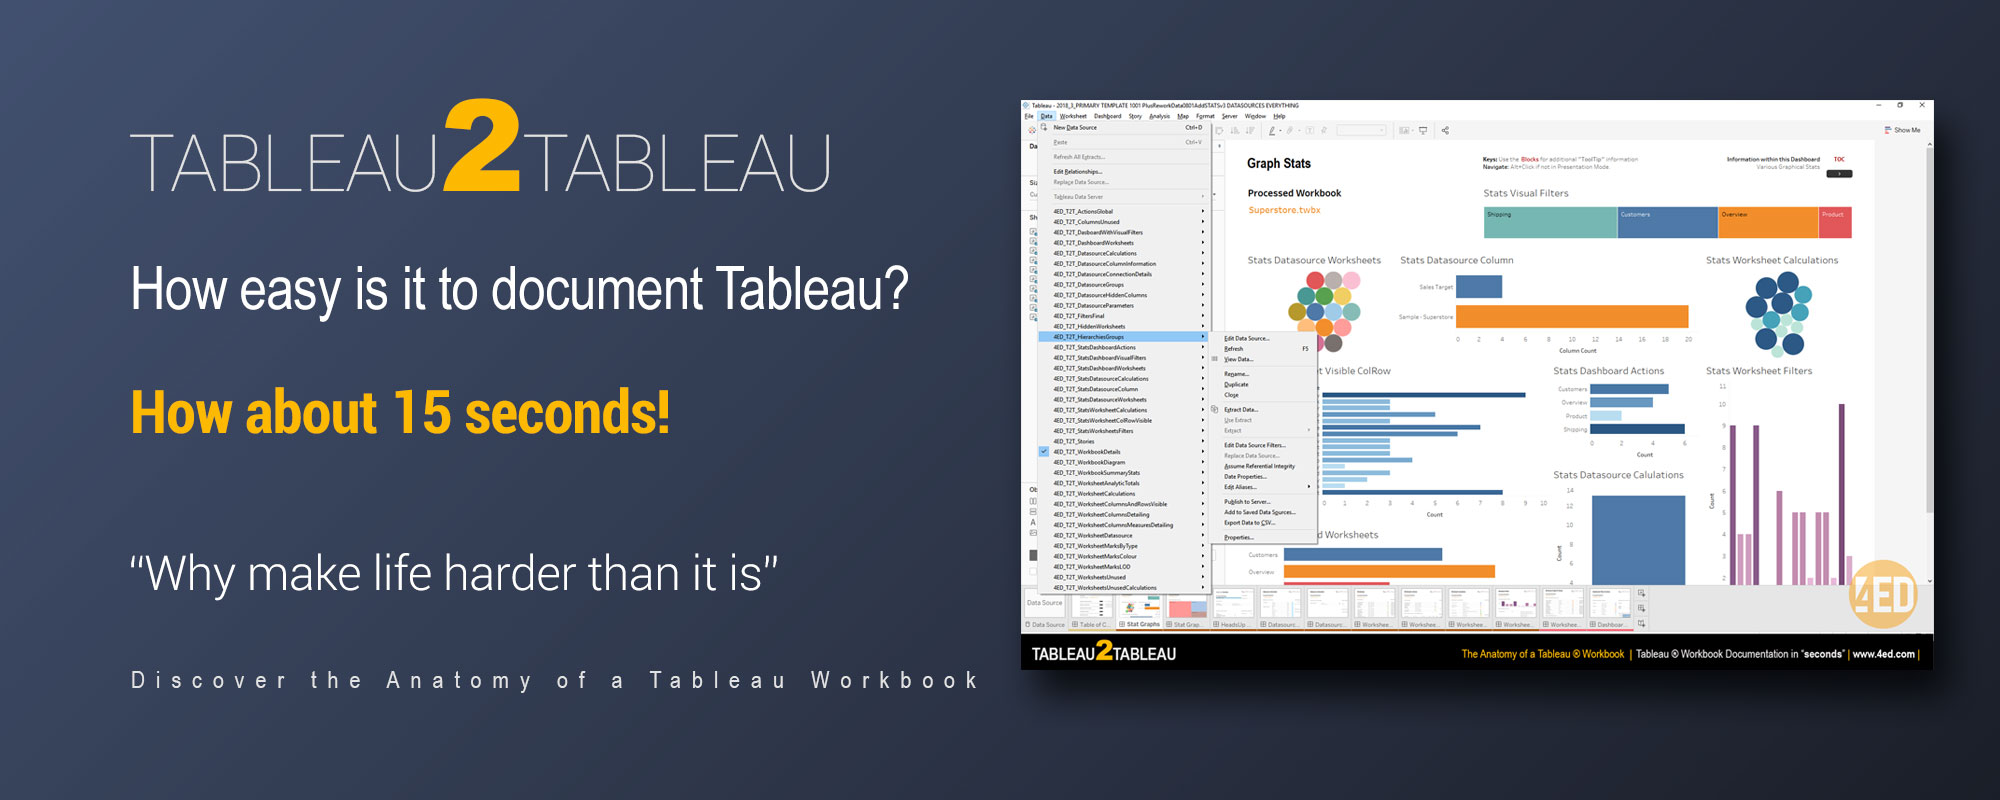 How To Easily Document Your Tableau Workbooks Why